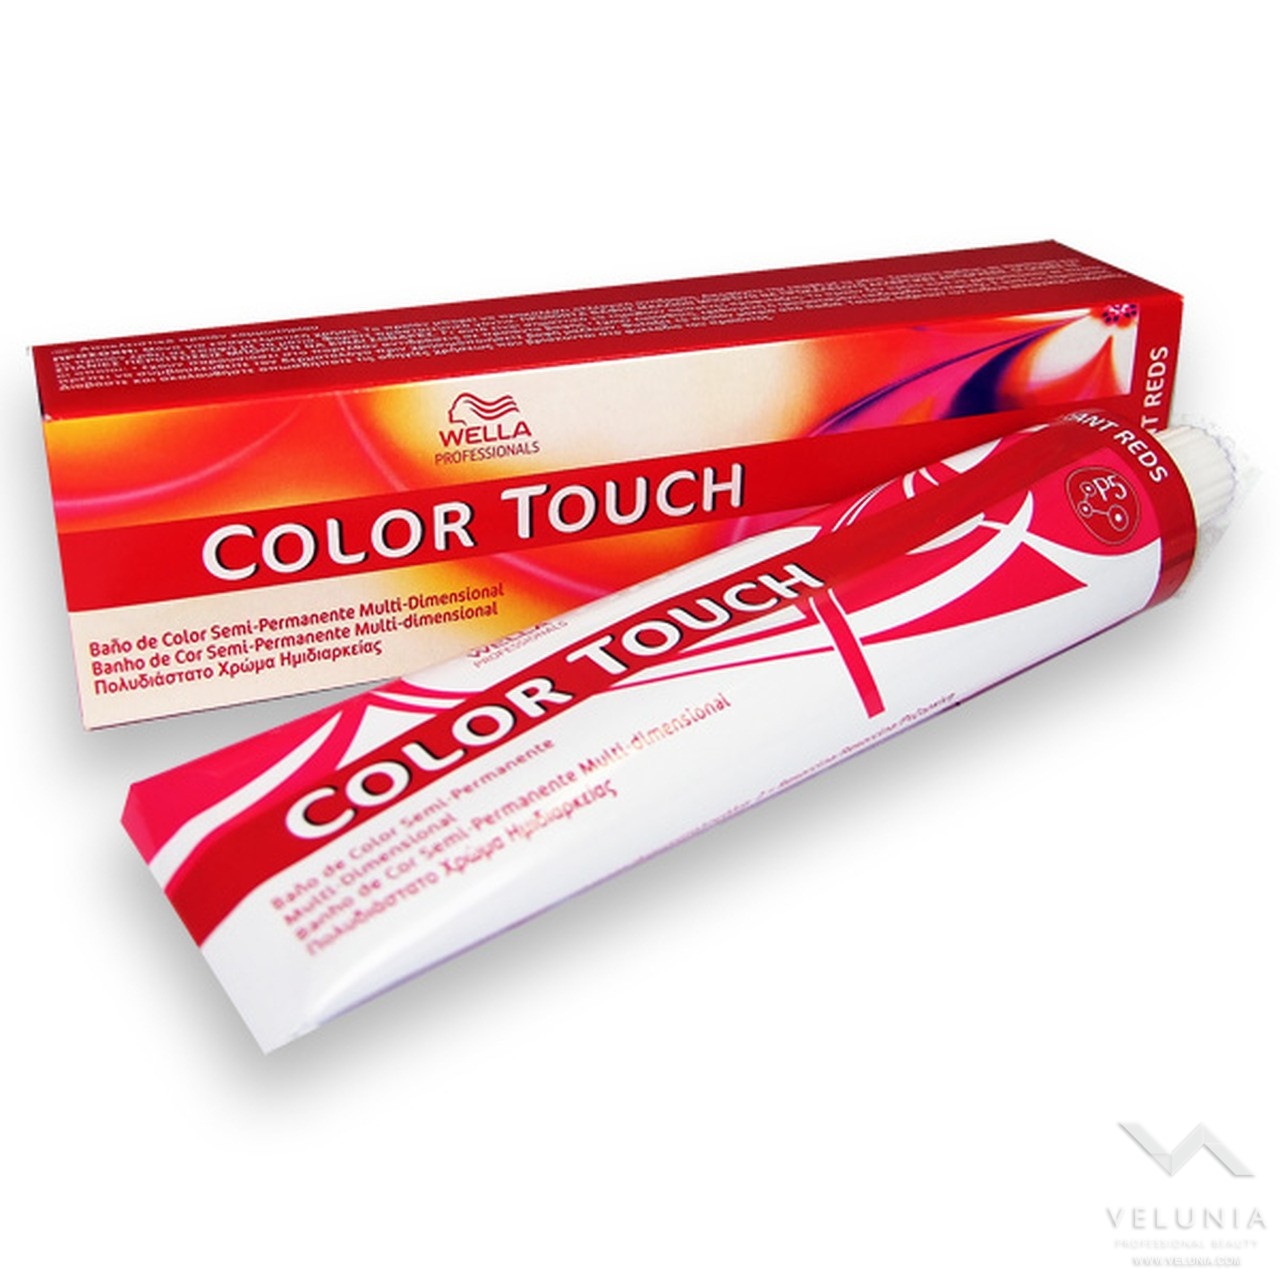 Wella Color Touch - 6/4 Biondo Scuro Ramato 1